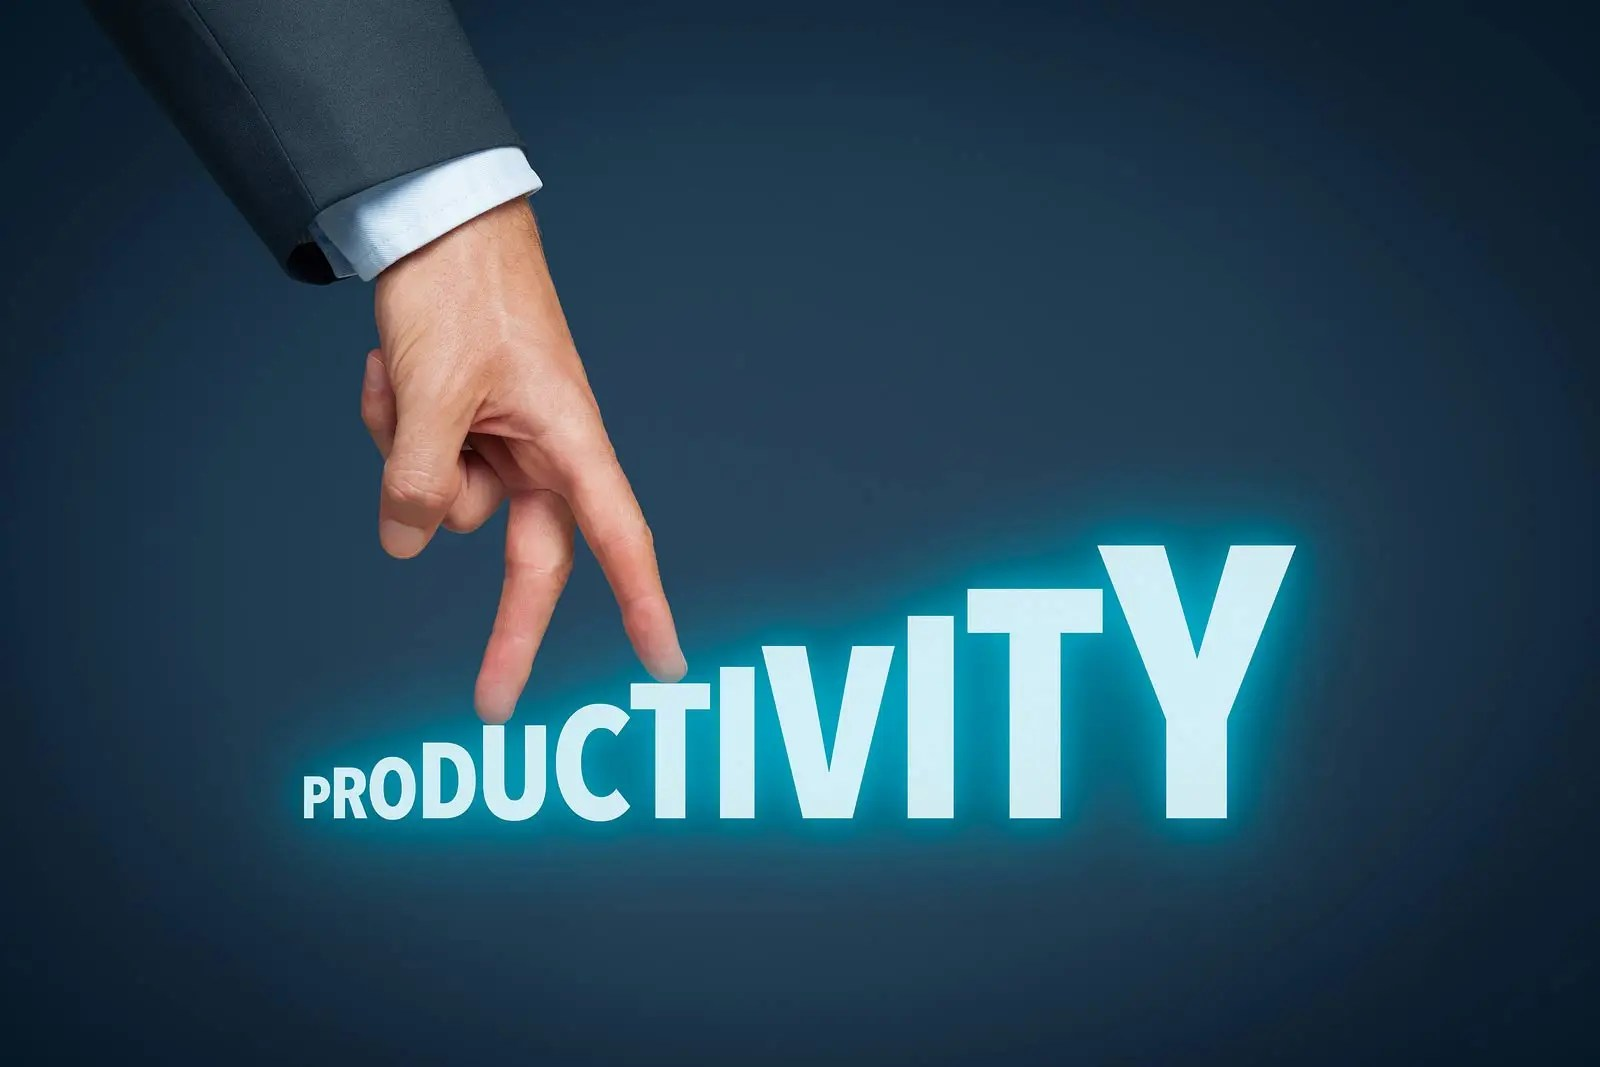 Use This Common Practice To Reduce Employee Turnover AND Improve Productivity